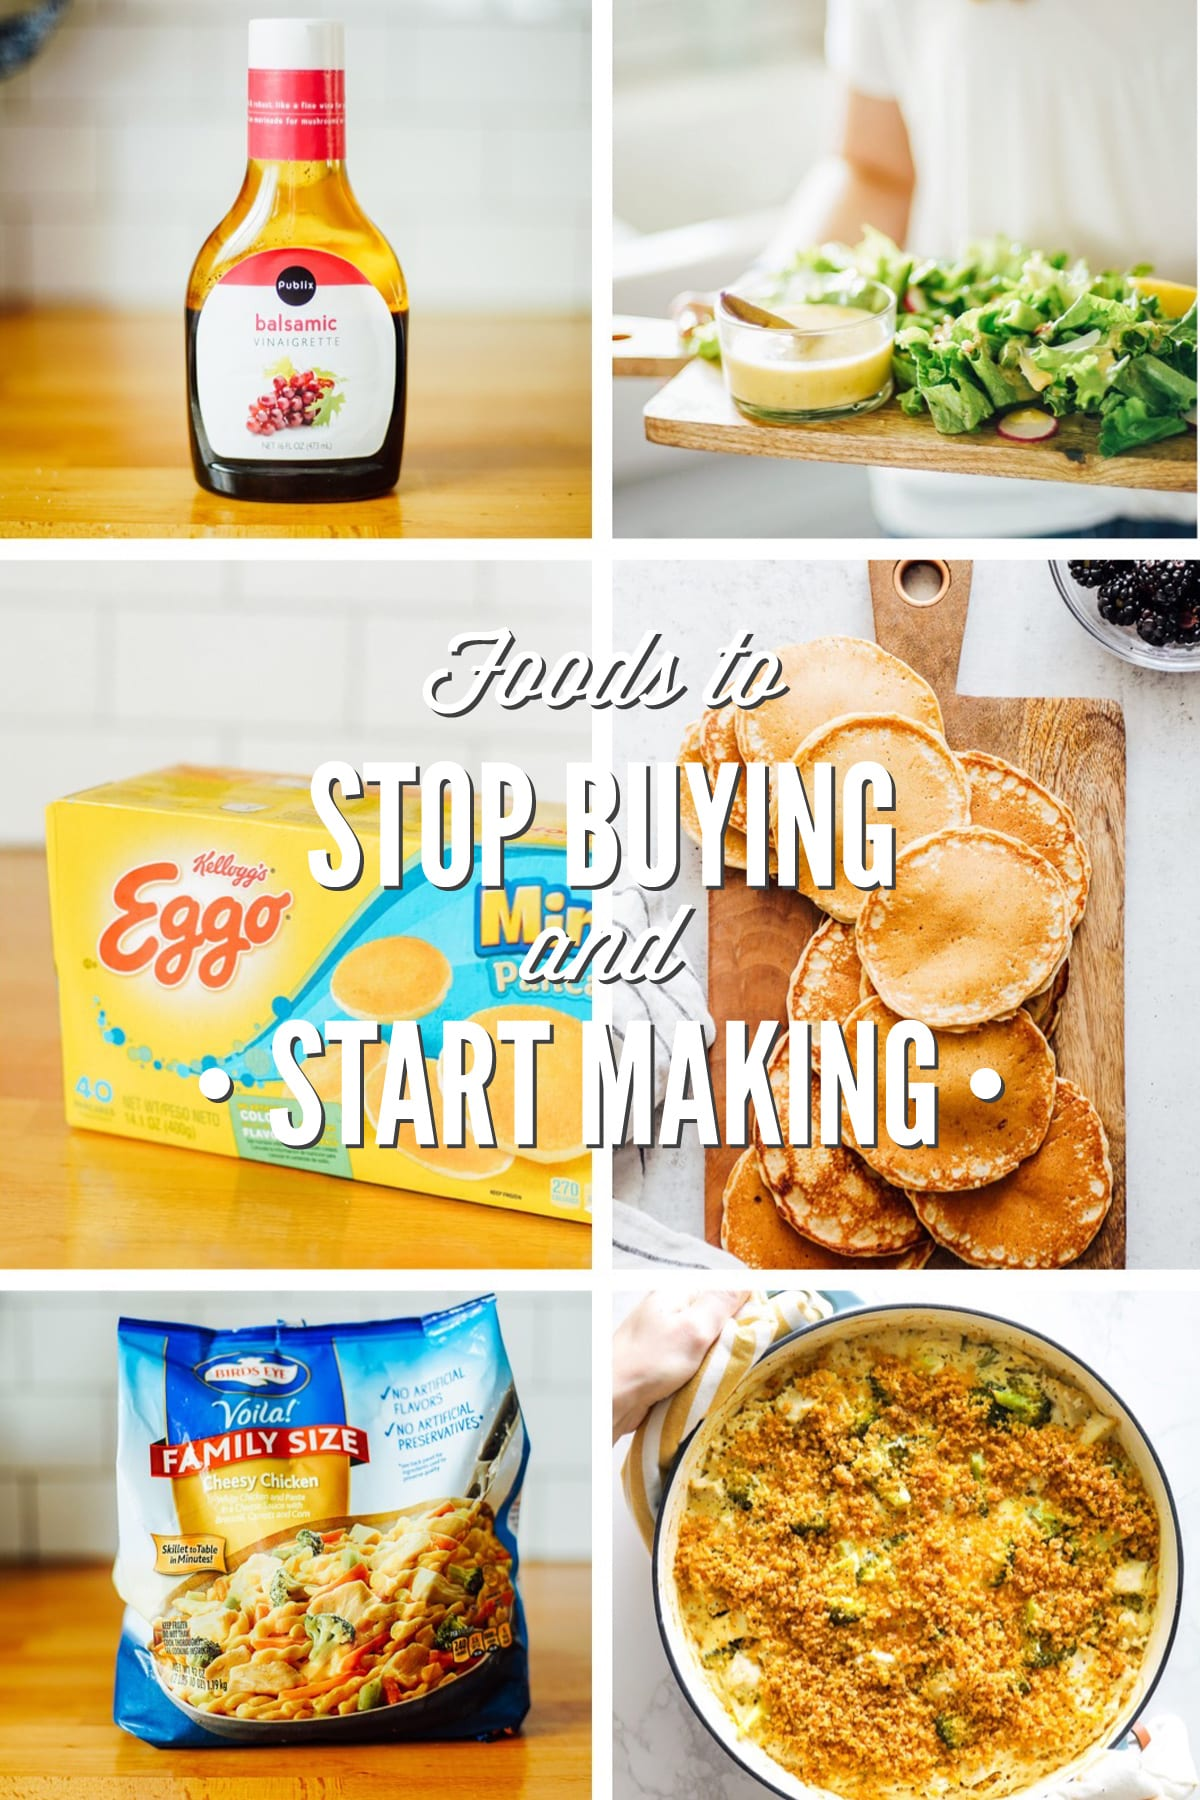 Processed Foods to Stop Buying and Start Making